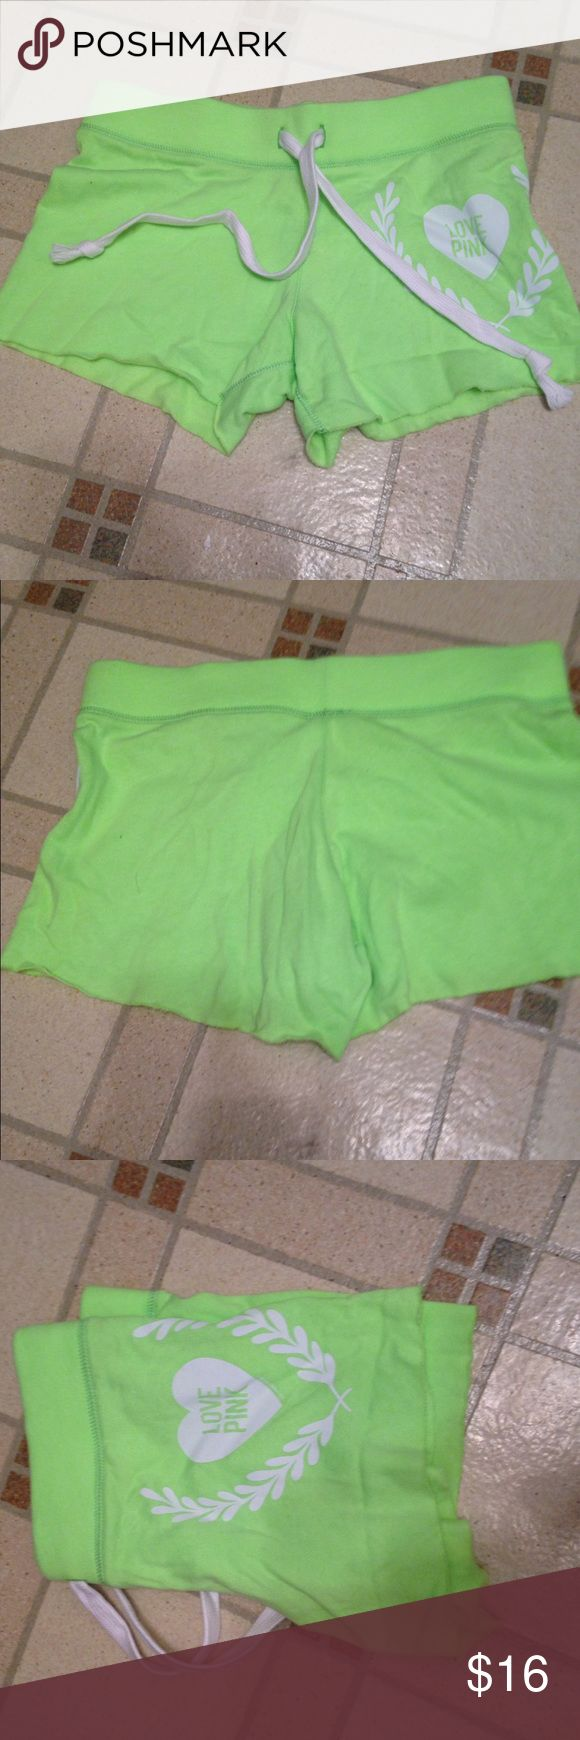 Pink Victoria's Secret neon green shorts New without tags's neon green shorts from pink a little wrinkled from storage but otherwise in excellent condition smoke-free pet free home PINK Victoria's Secret Shorts